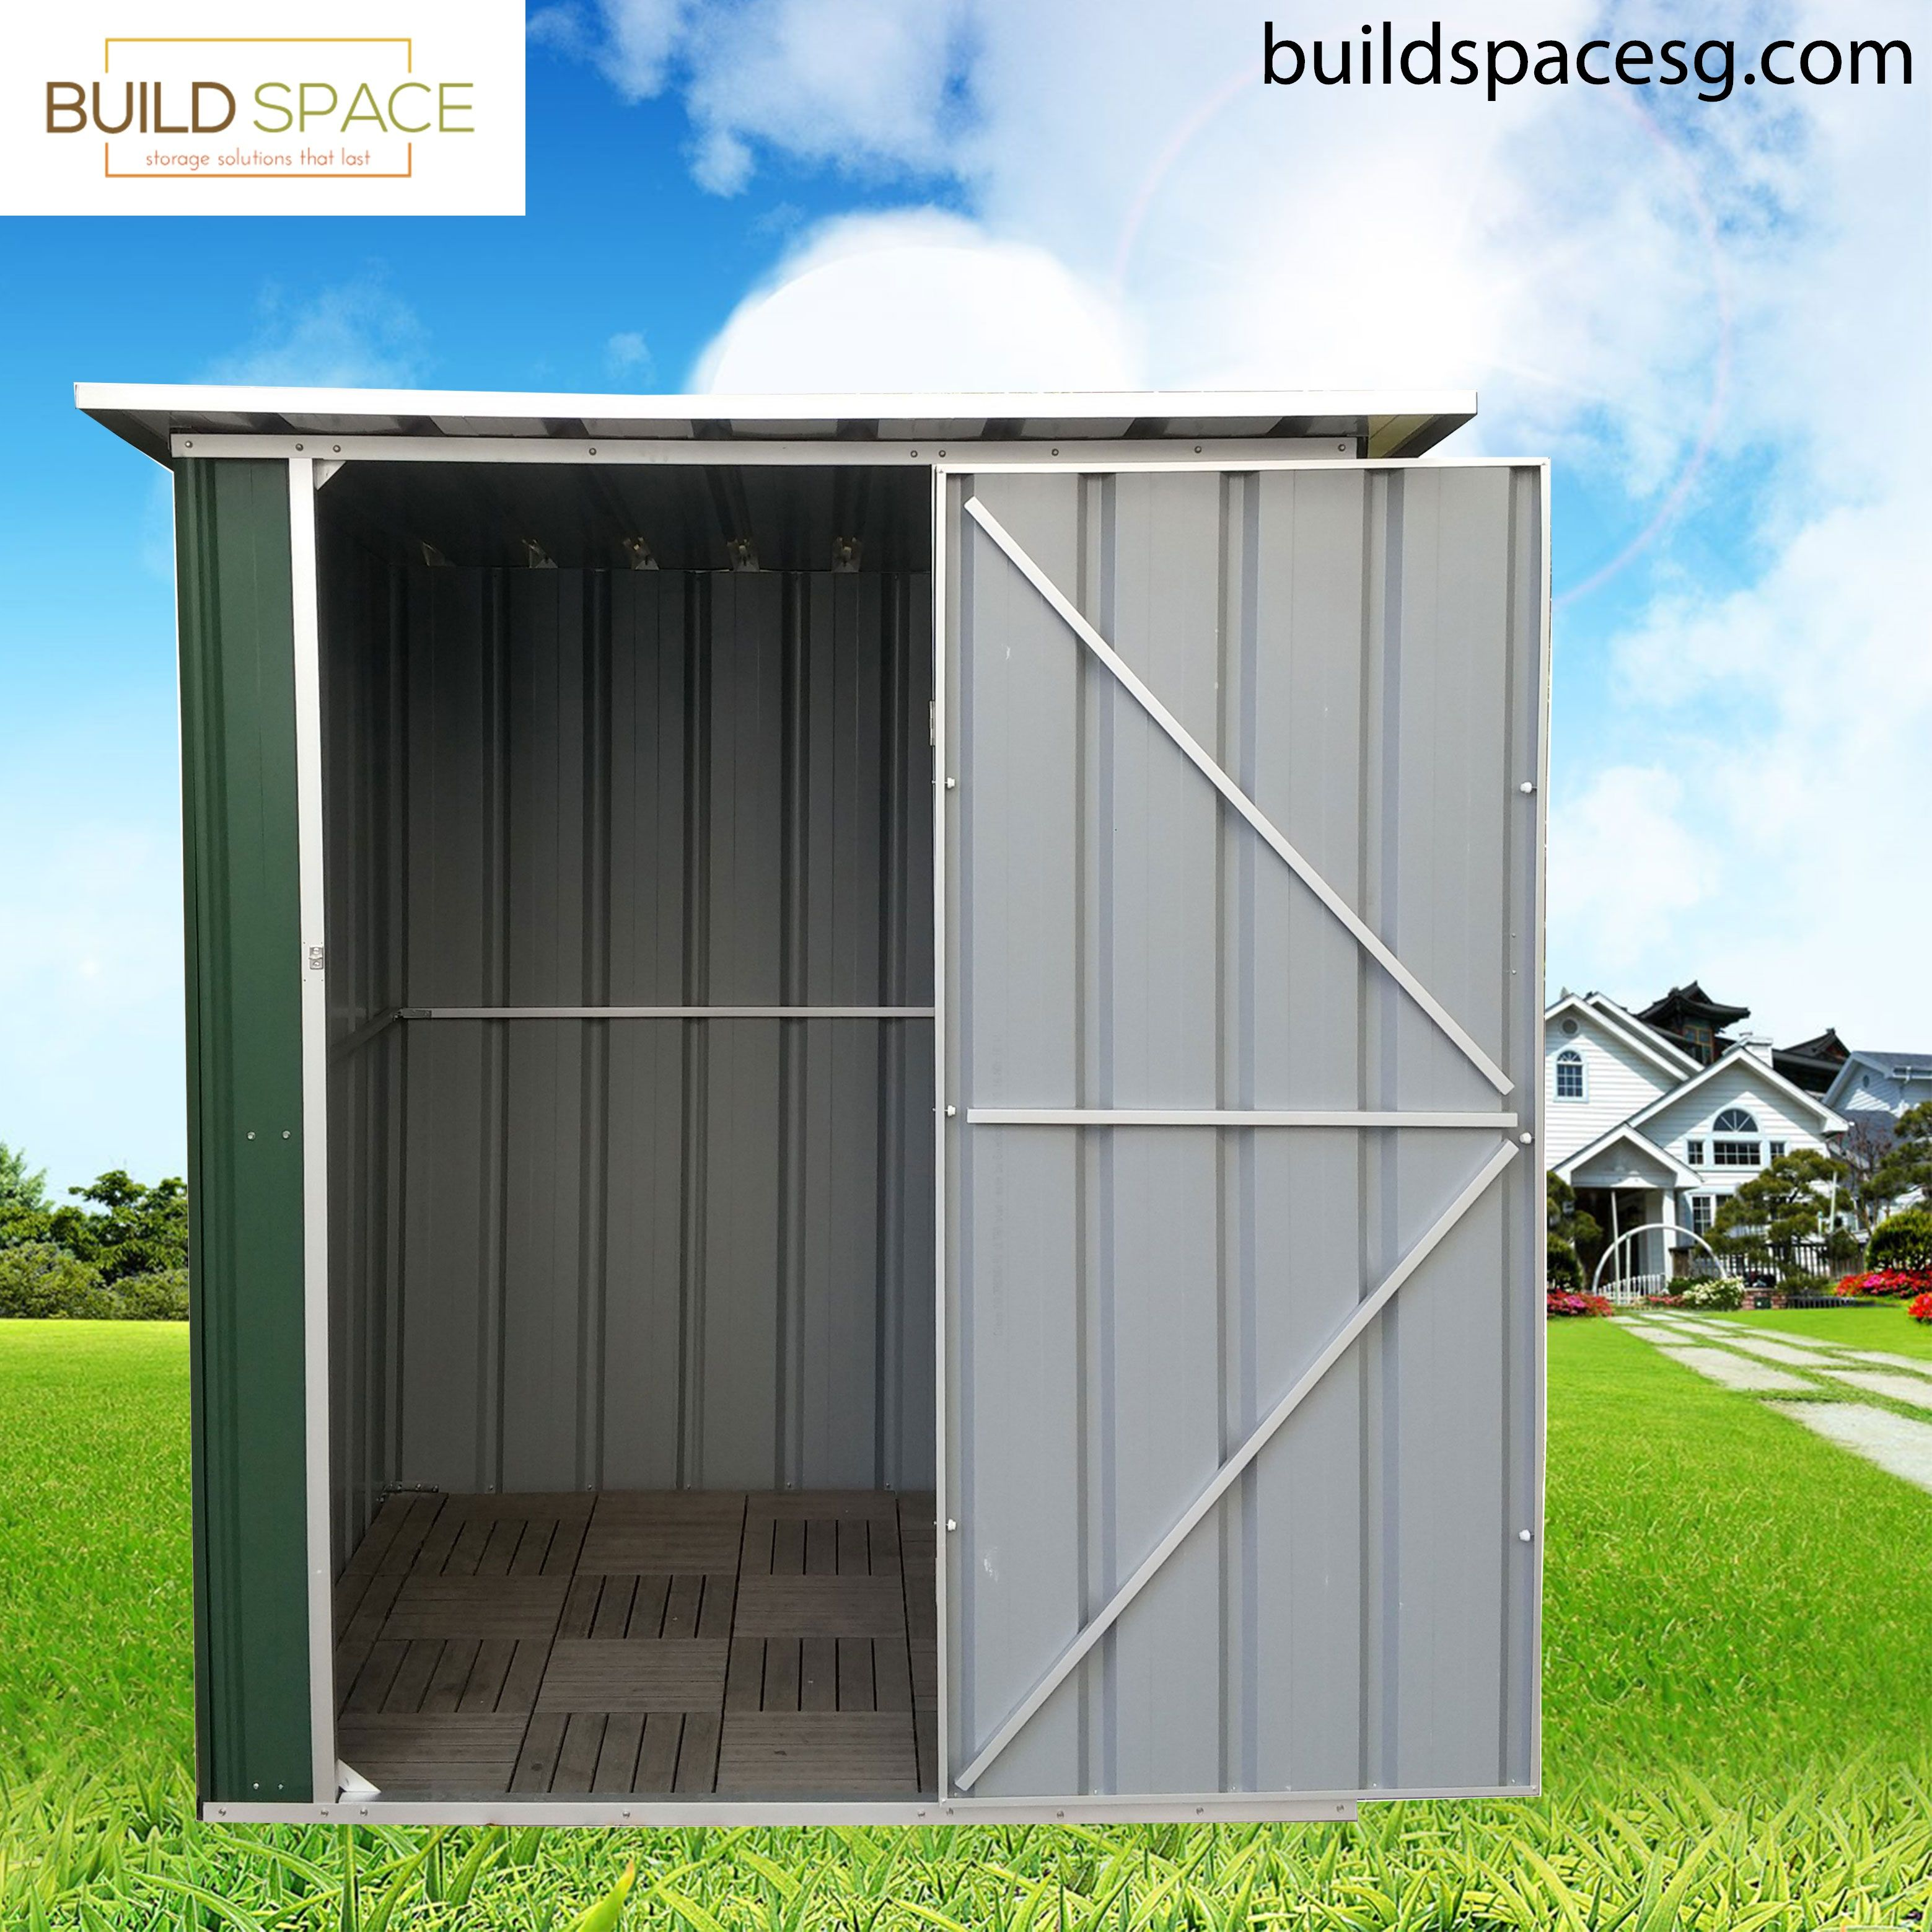 12 Quality Garden Sheds Singapore Ideas Steel Panels Rust Resistant Stainless Steel Fasteners